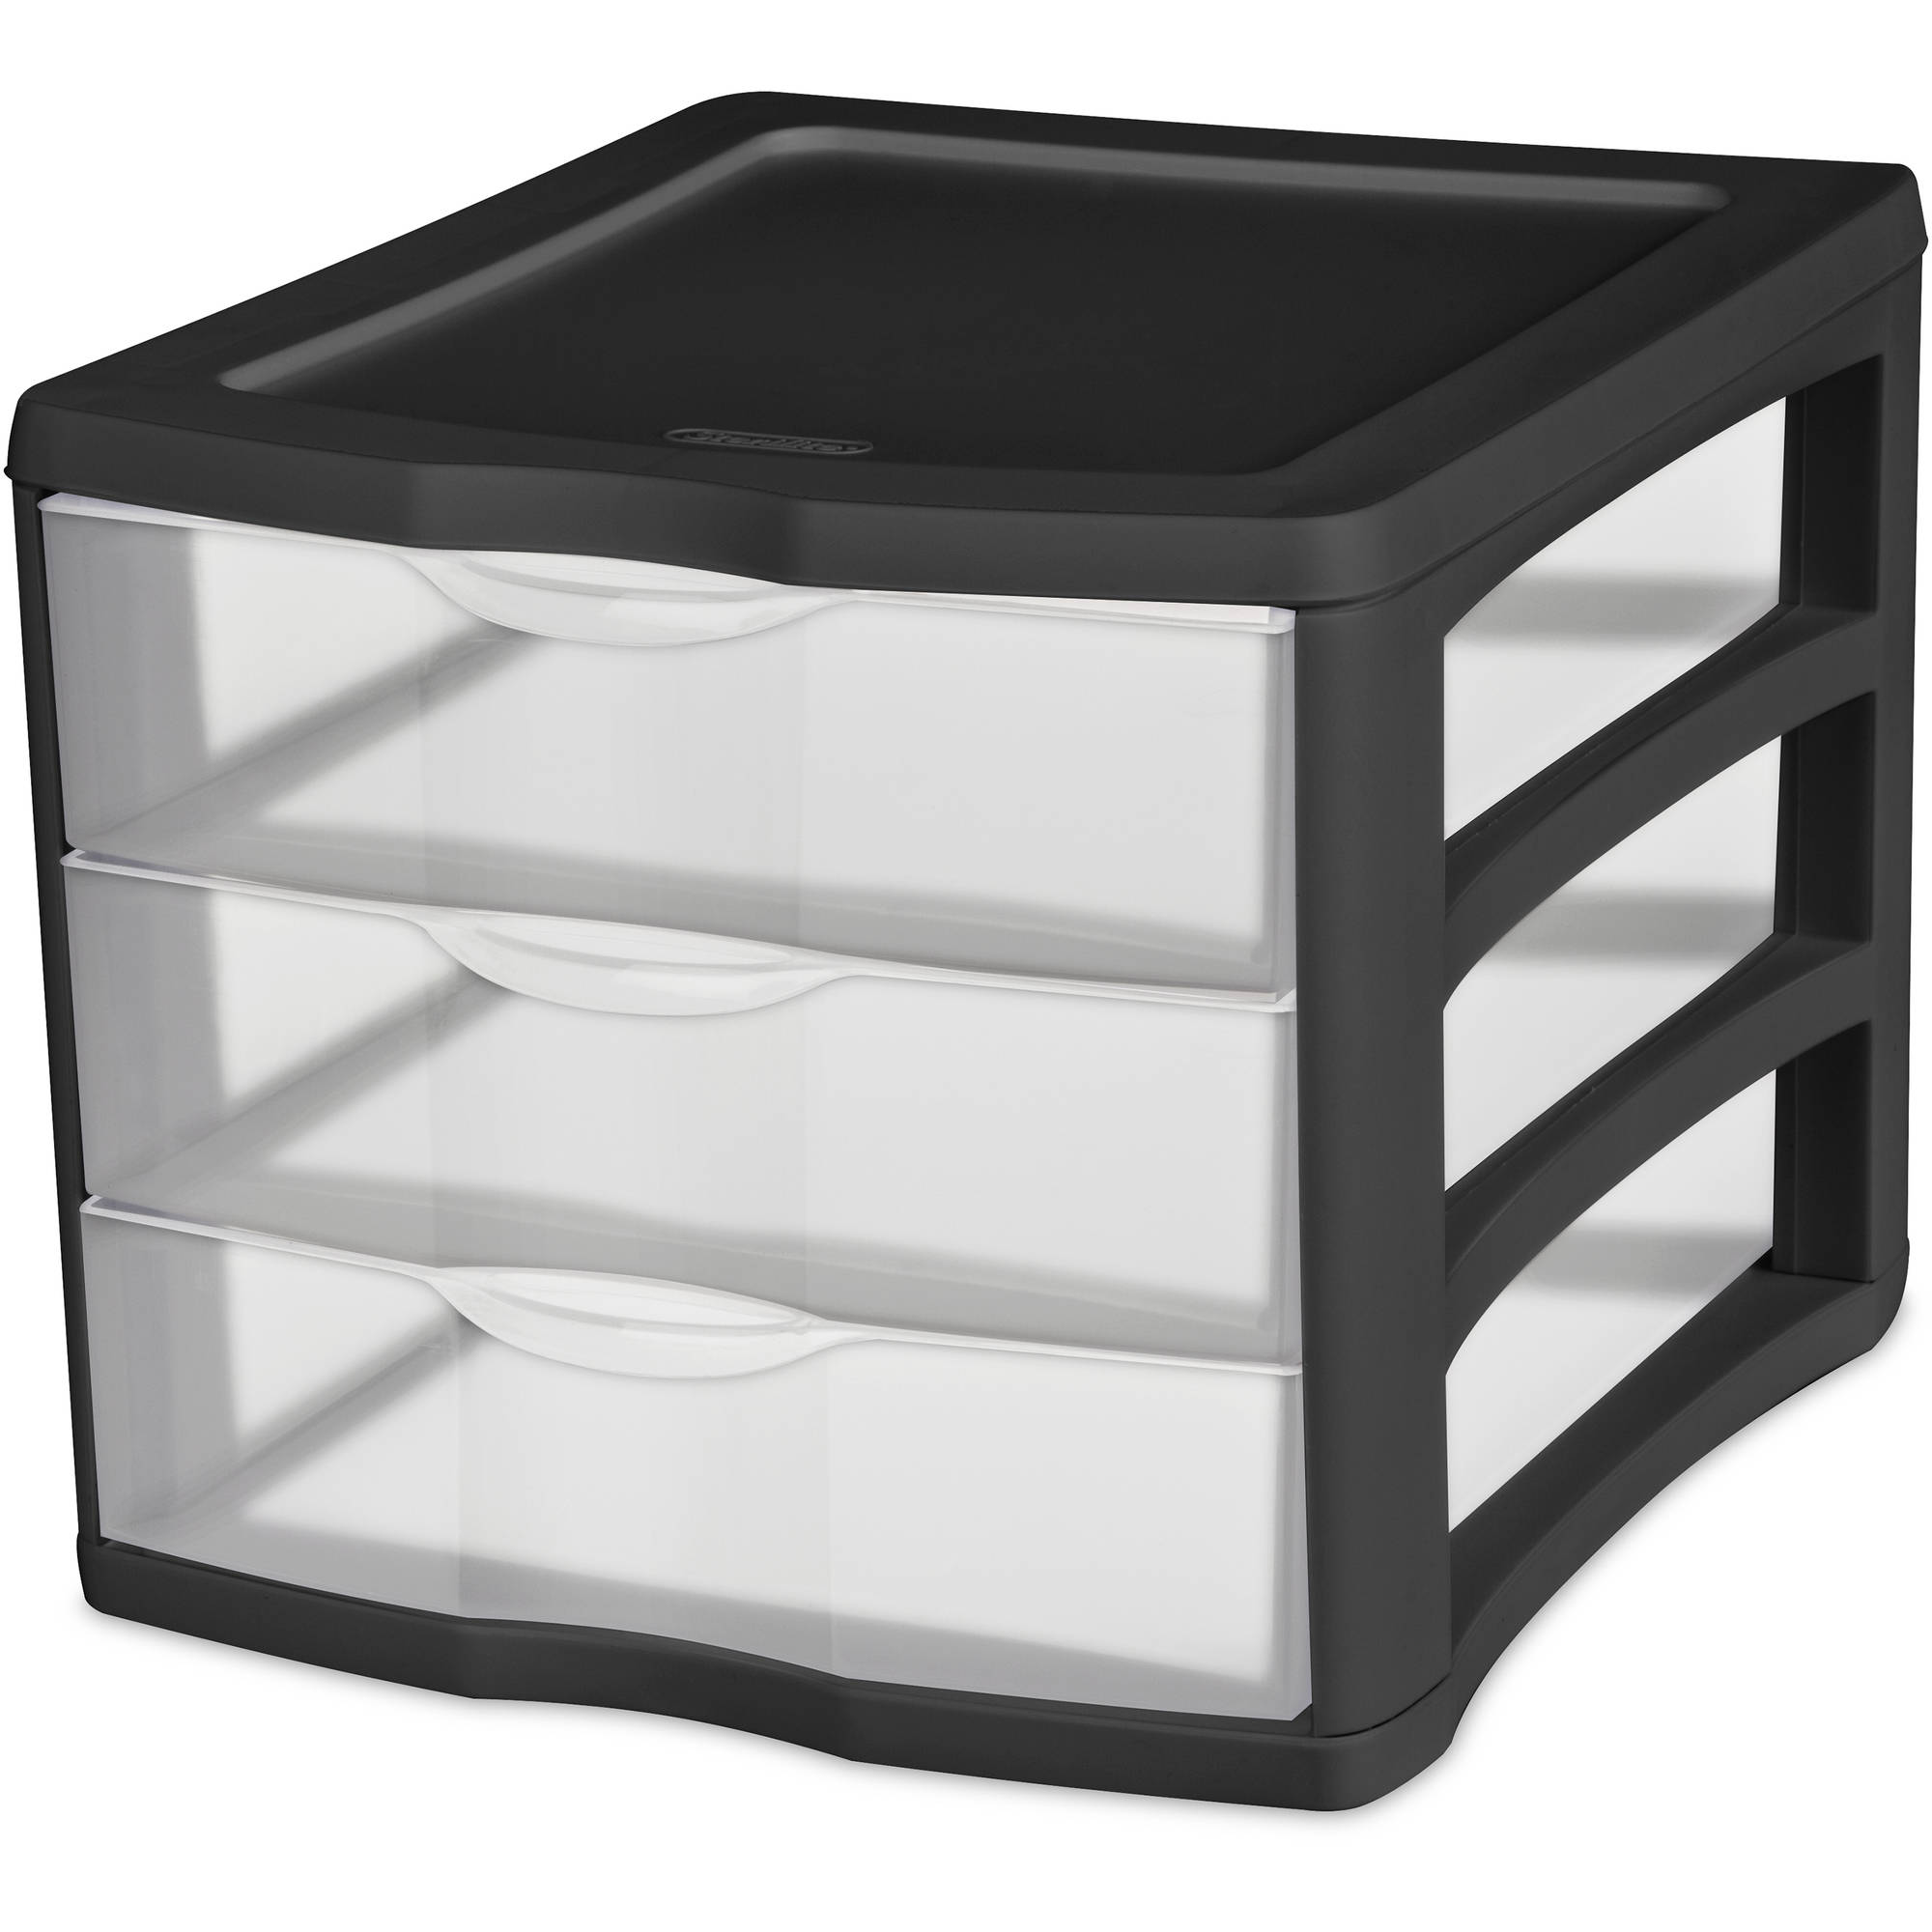 Sterilite 3 Drawer Desktop Unit- Black (Available in Case of 4 or Single Unit)